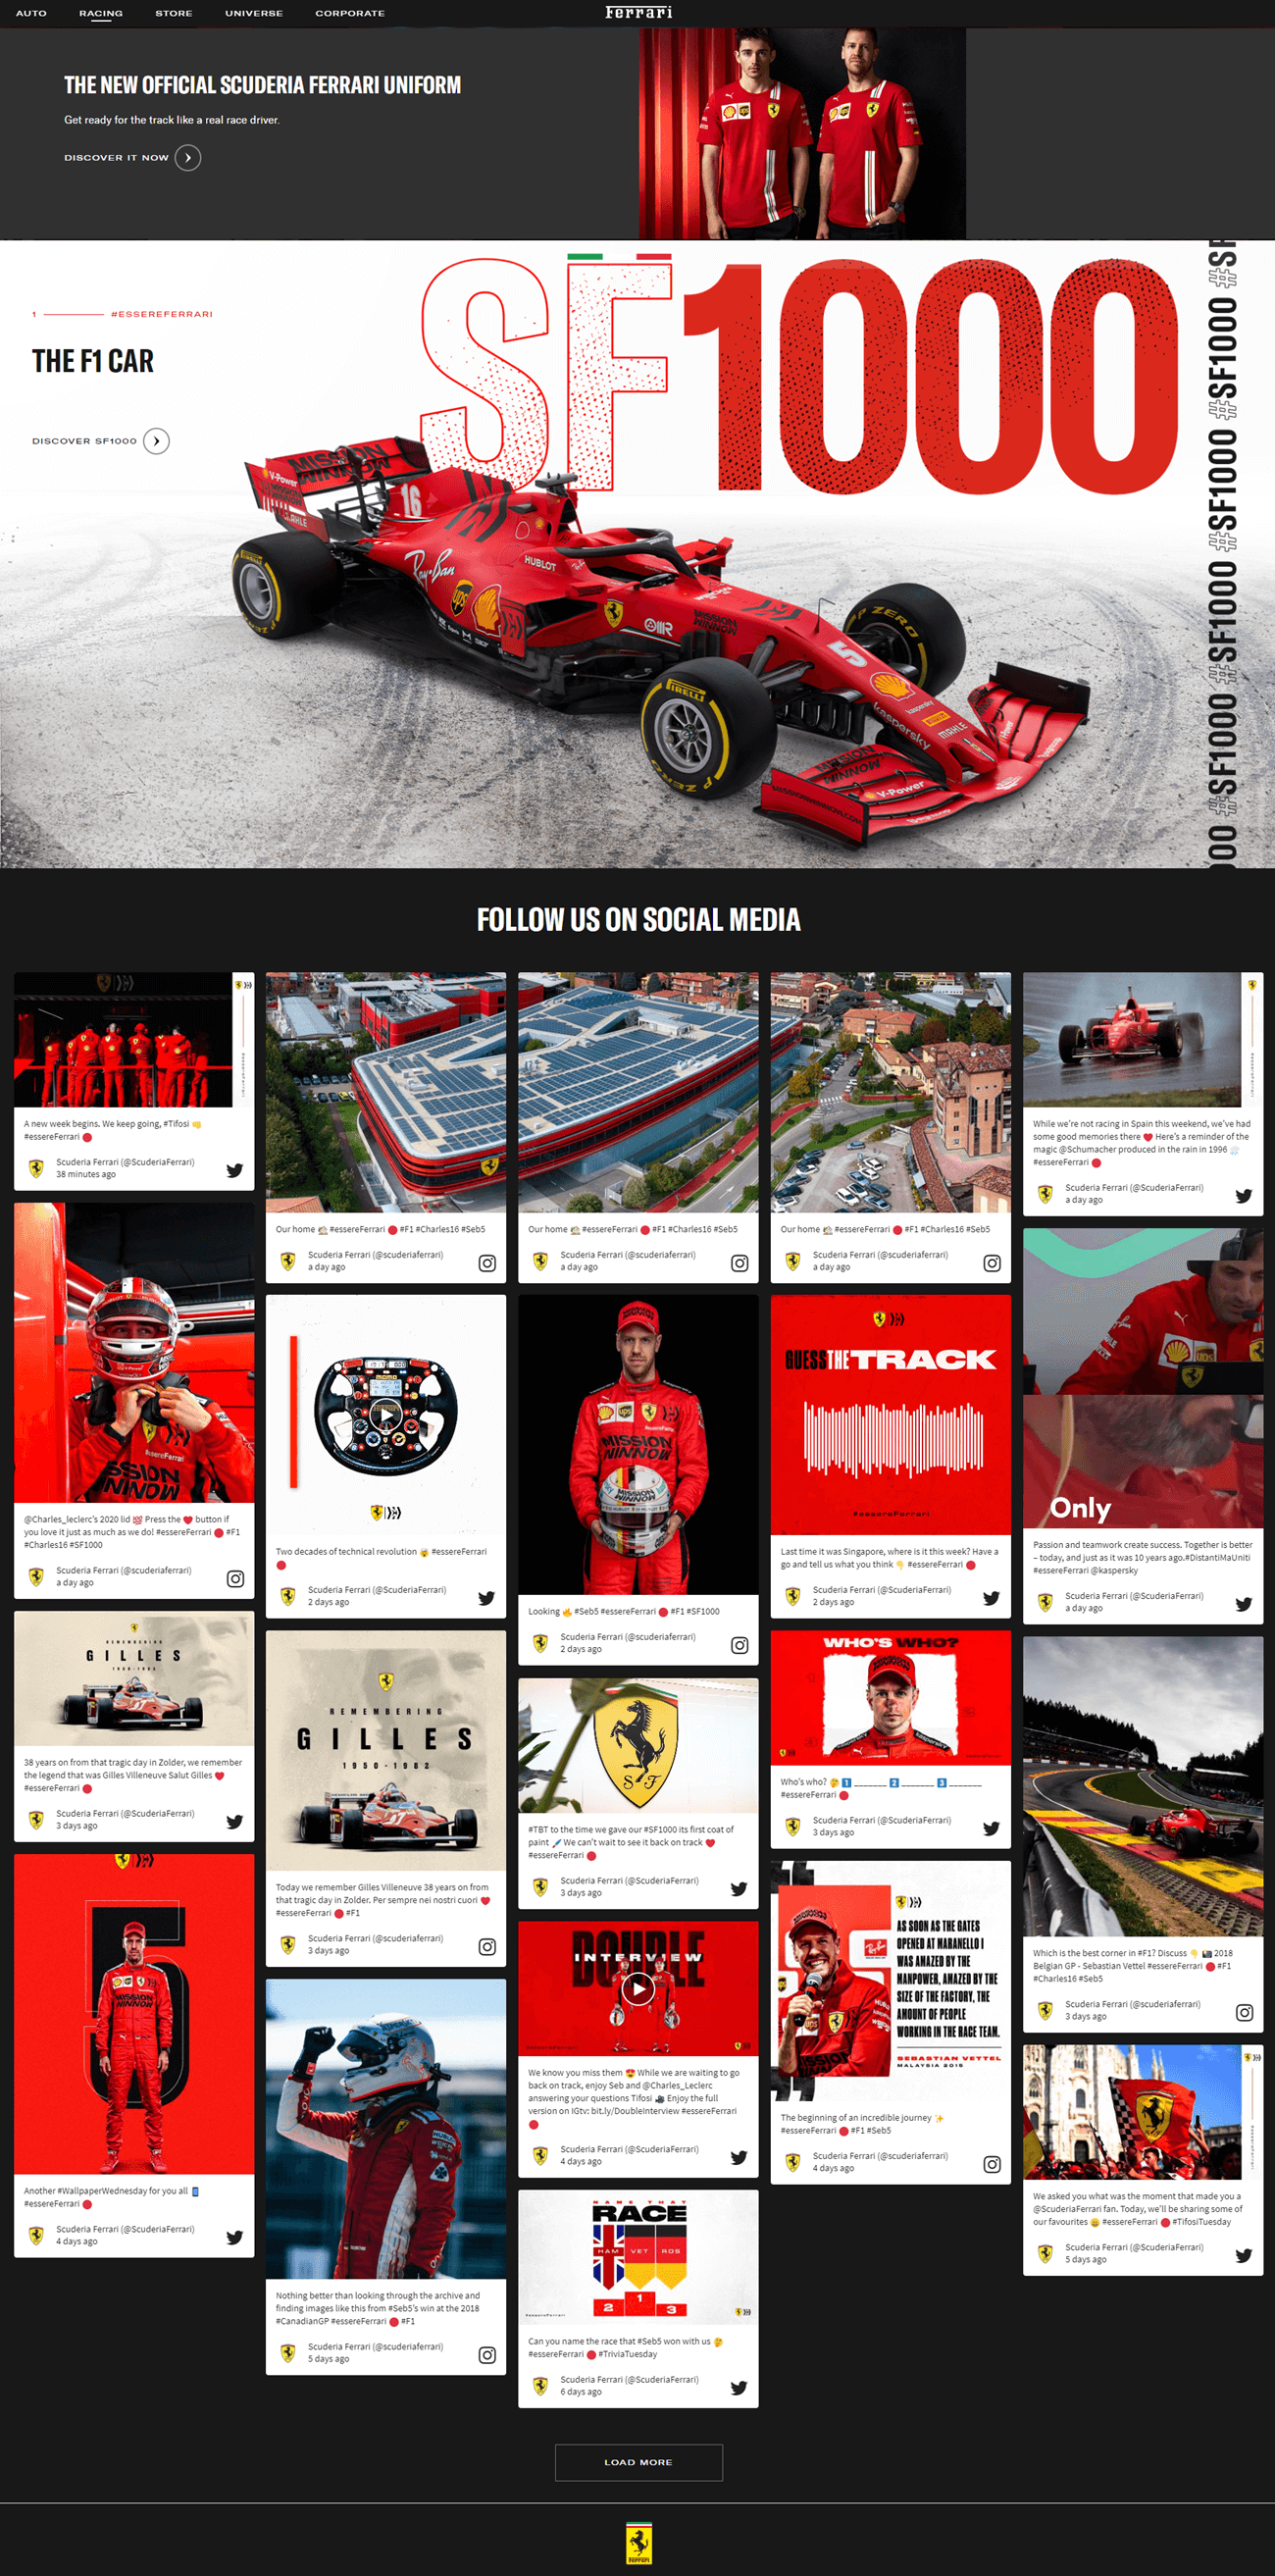 Screenshot of the live social feed as it is embedded on the Formula 1 landing page of the Ferrari website.